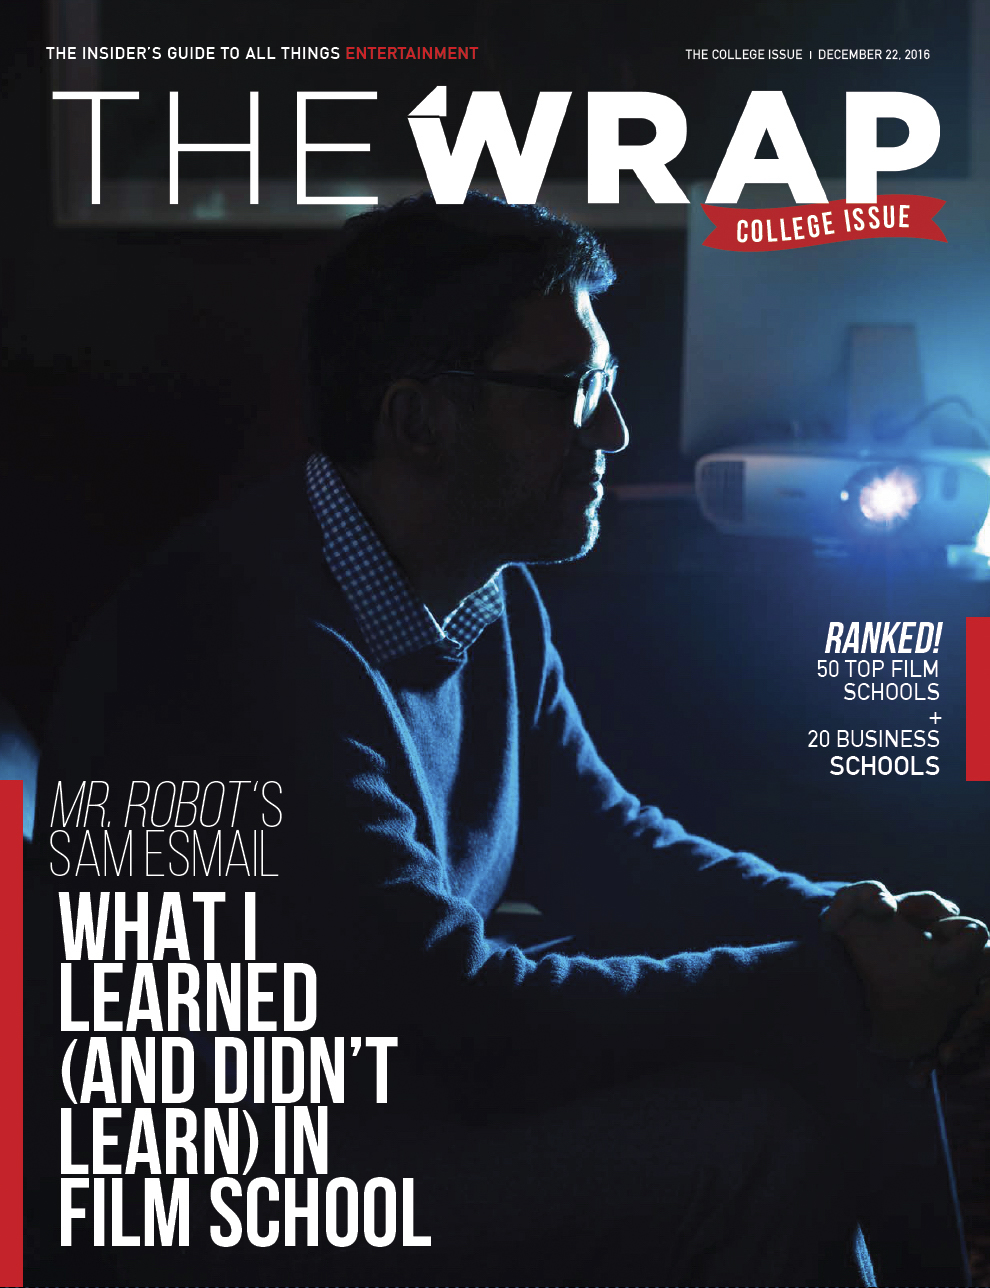 THE WRAP SAM ESMAIL COVER ELISABETH CAREN